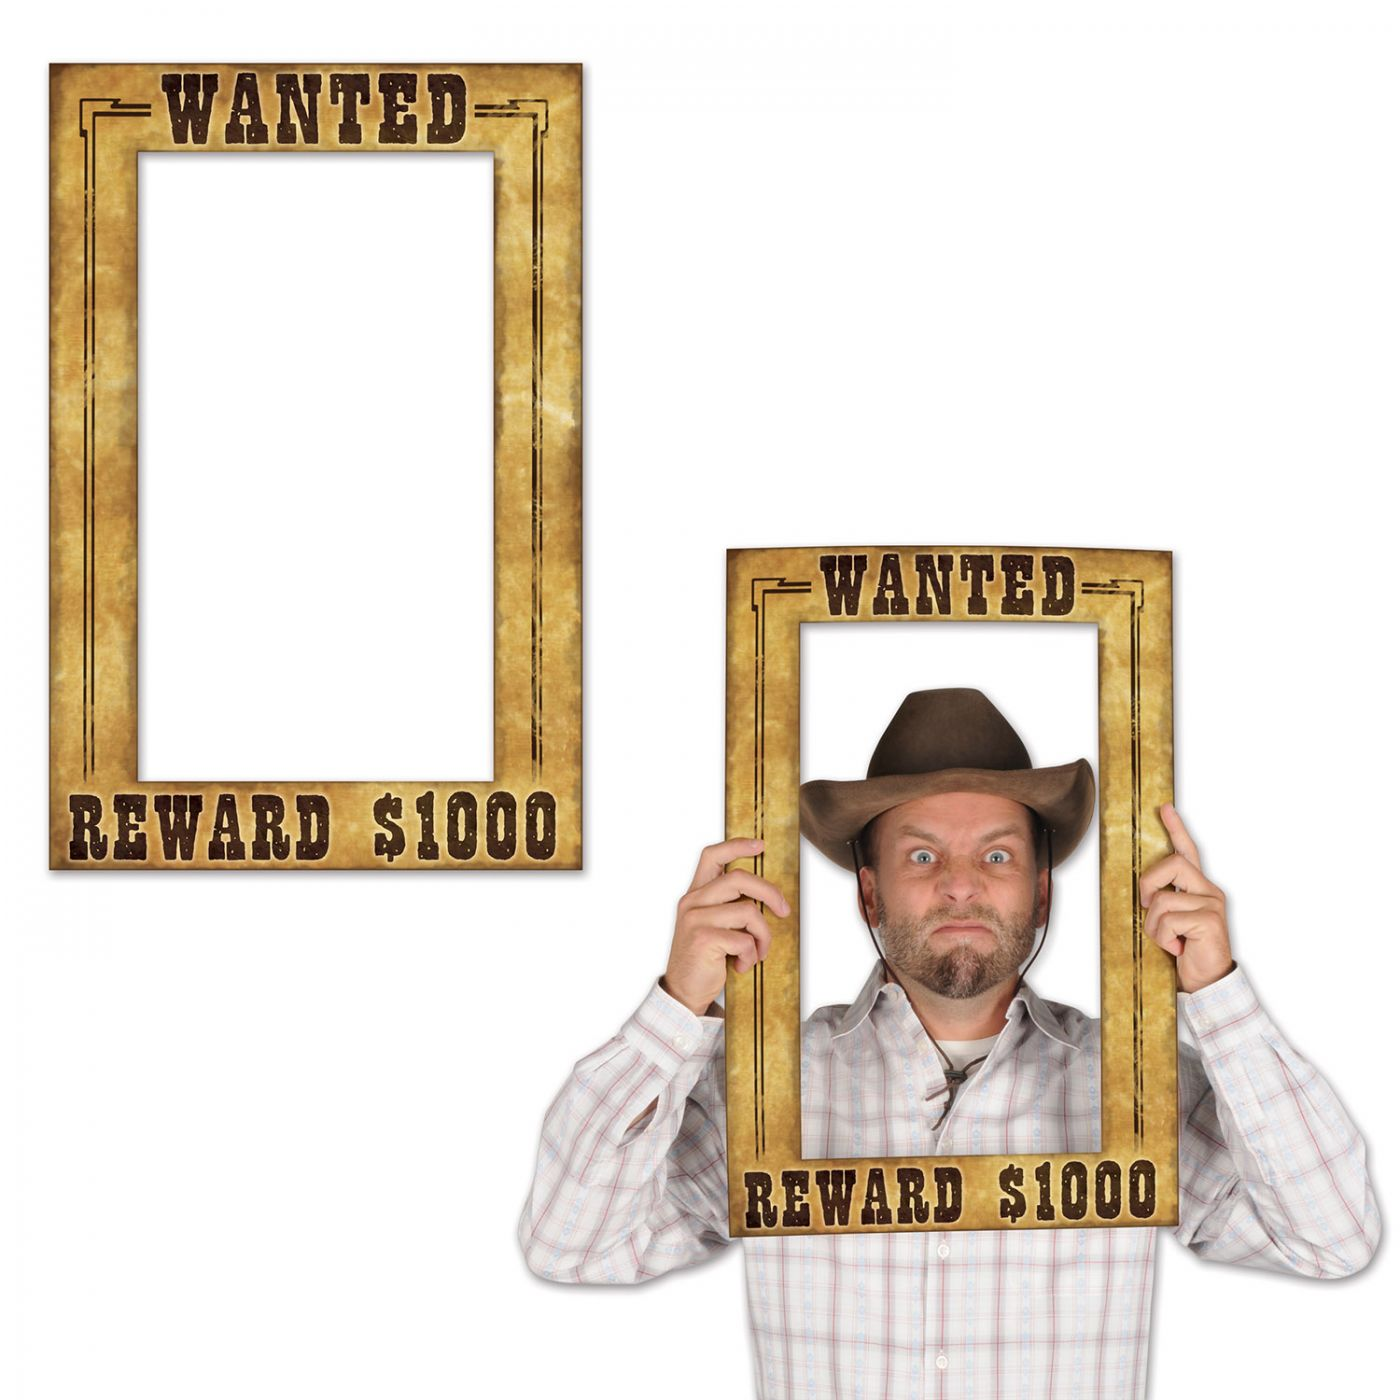 Western Wanted Photo Fun Frame image